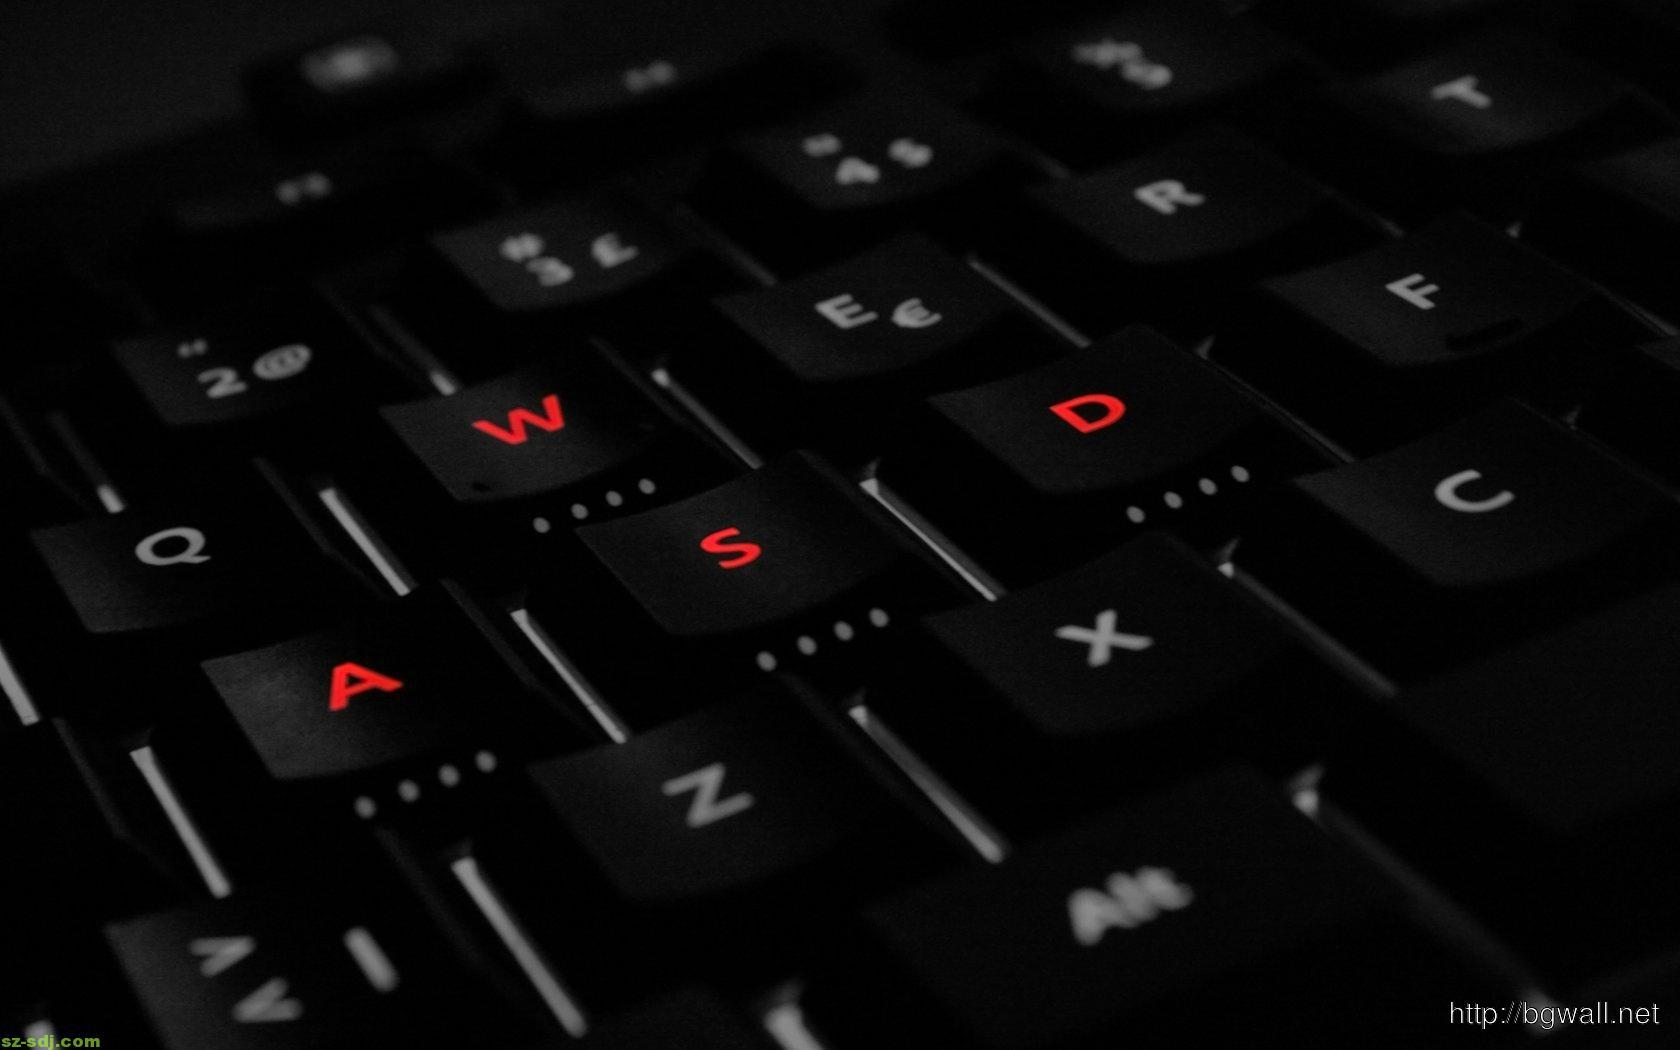 asdf-keyboard-wallpaper-images-high-definition